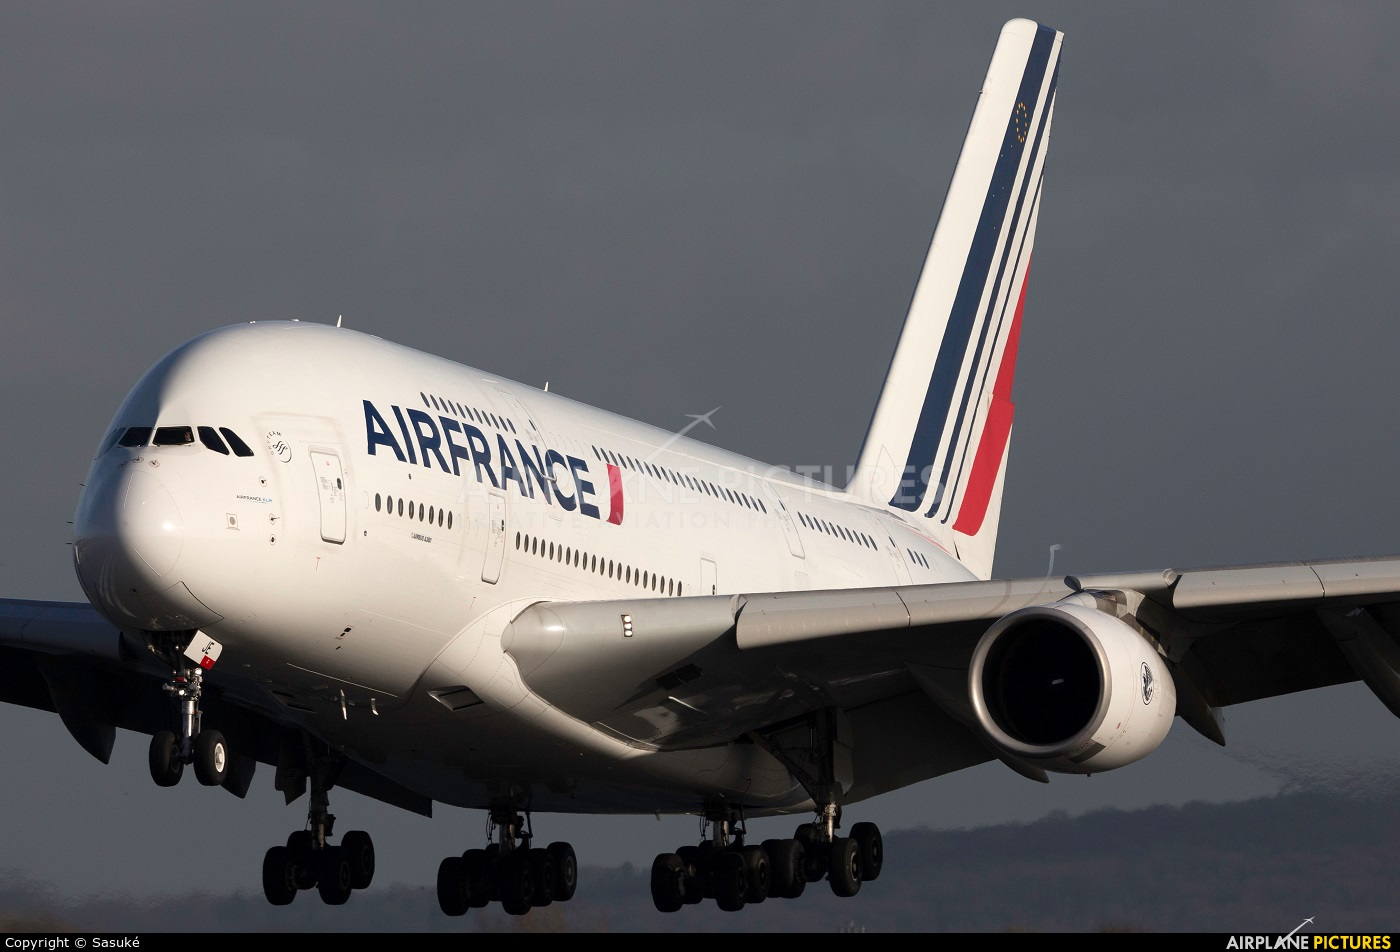 Air France F-HPJE aircraft at Paris - Charles de Gaulle